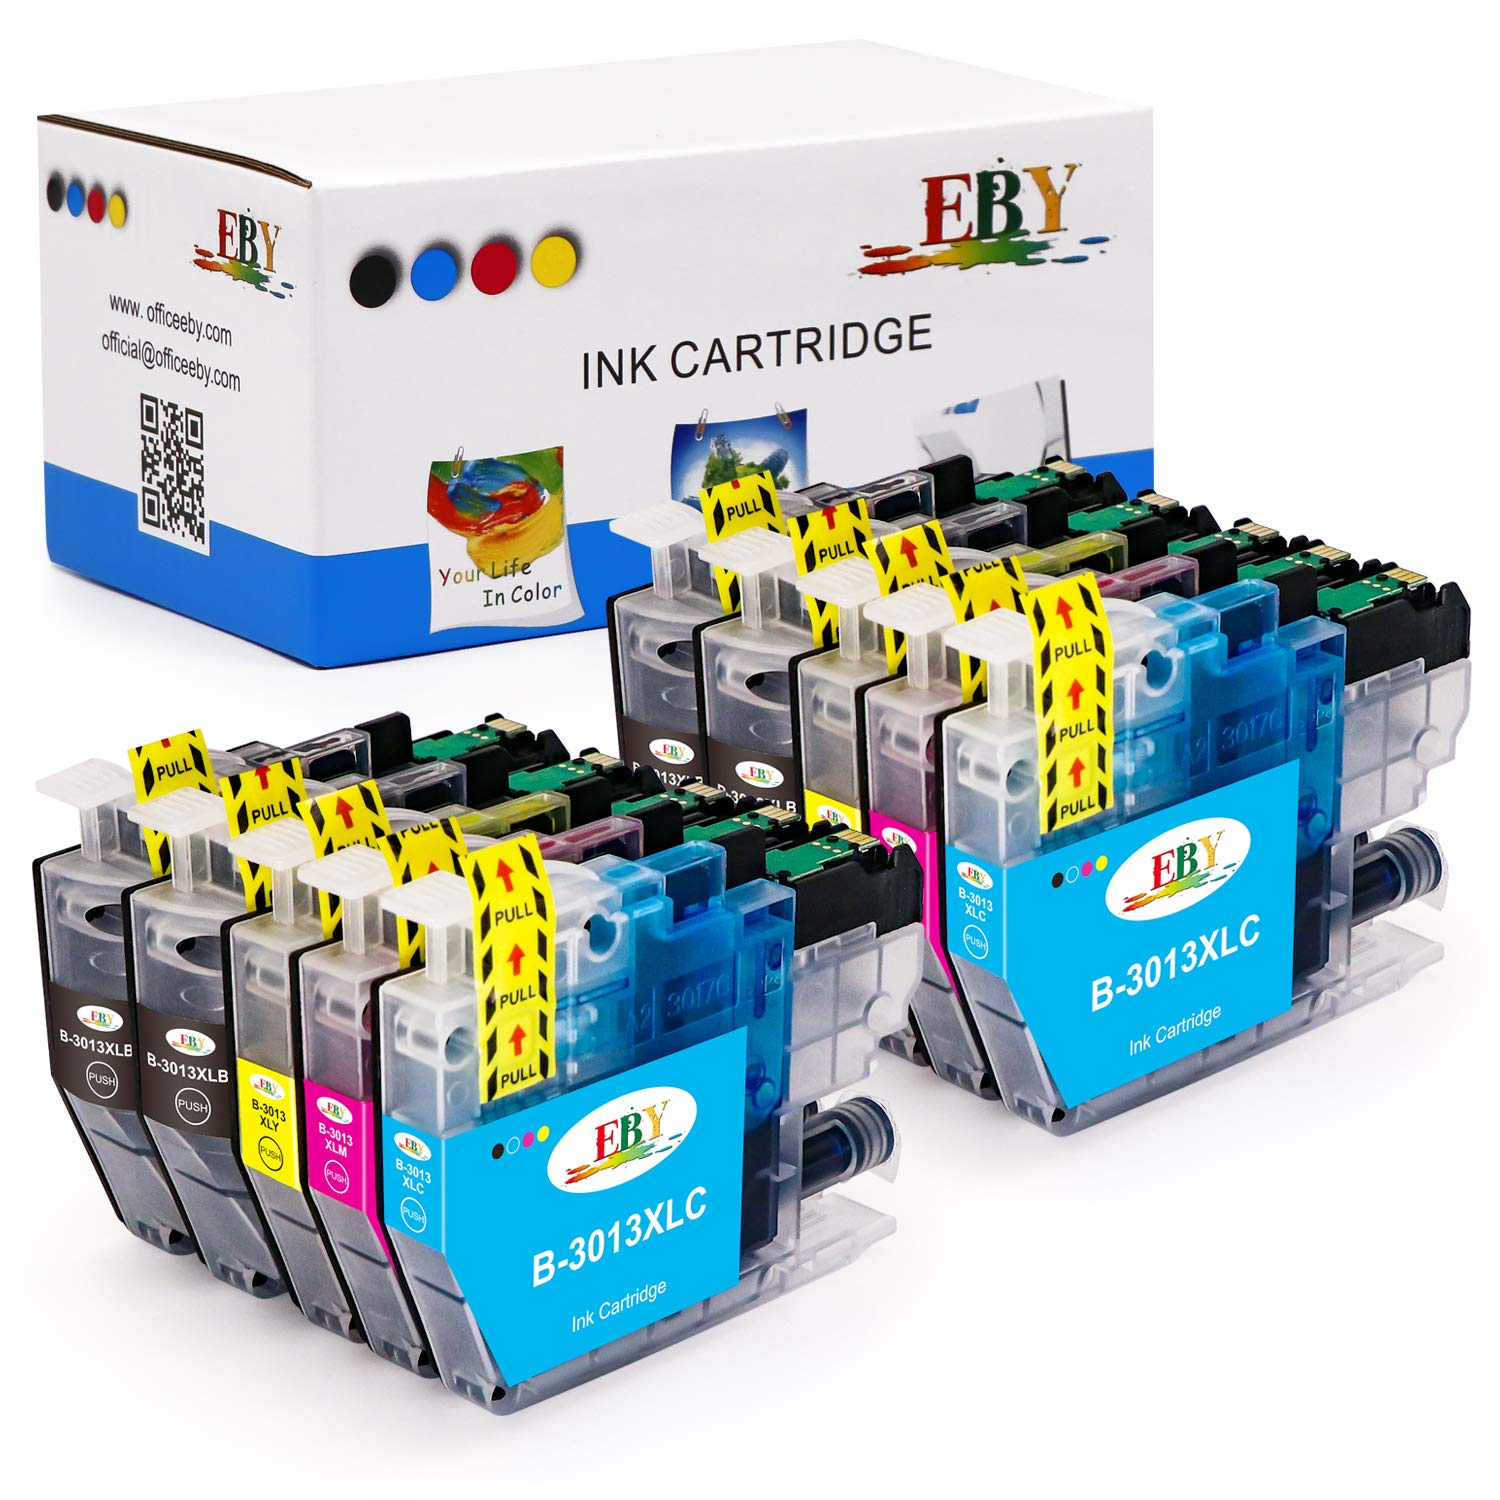 EBY Compatible Ink Cartridge Replacement for Brother LC3013 LC-3013 LC3011 Use with Brother MFC-J491DW MFC-J497DW MFC-J690DW MFC-J895DW (4 Black,2 Cyan, 2 Magenta, 2 Yellow, 10 Pack)